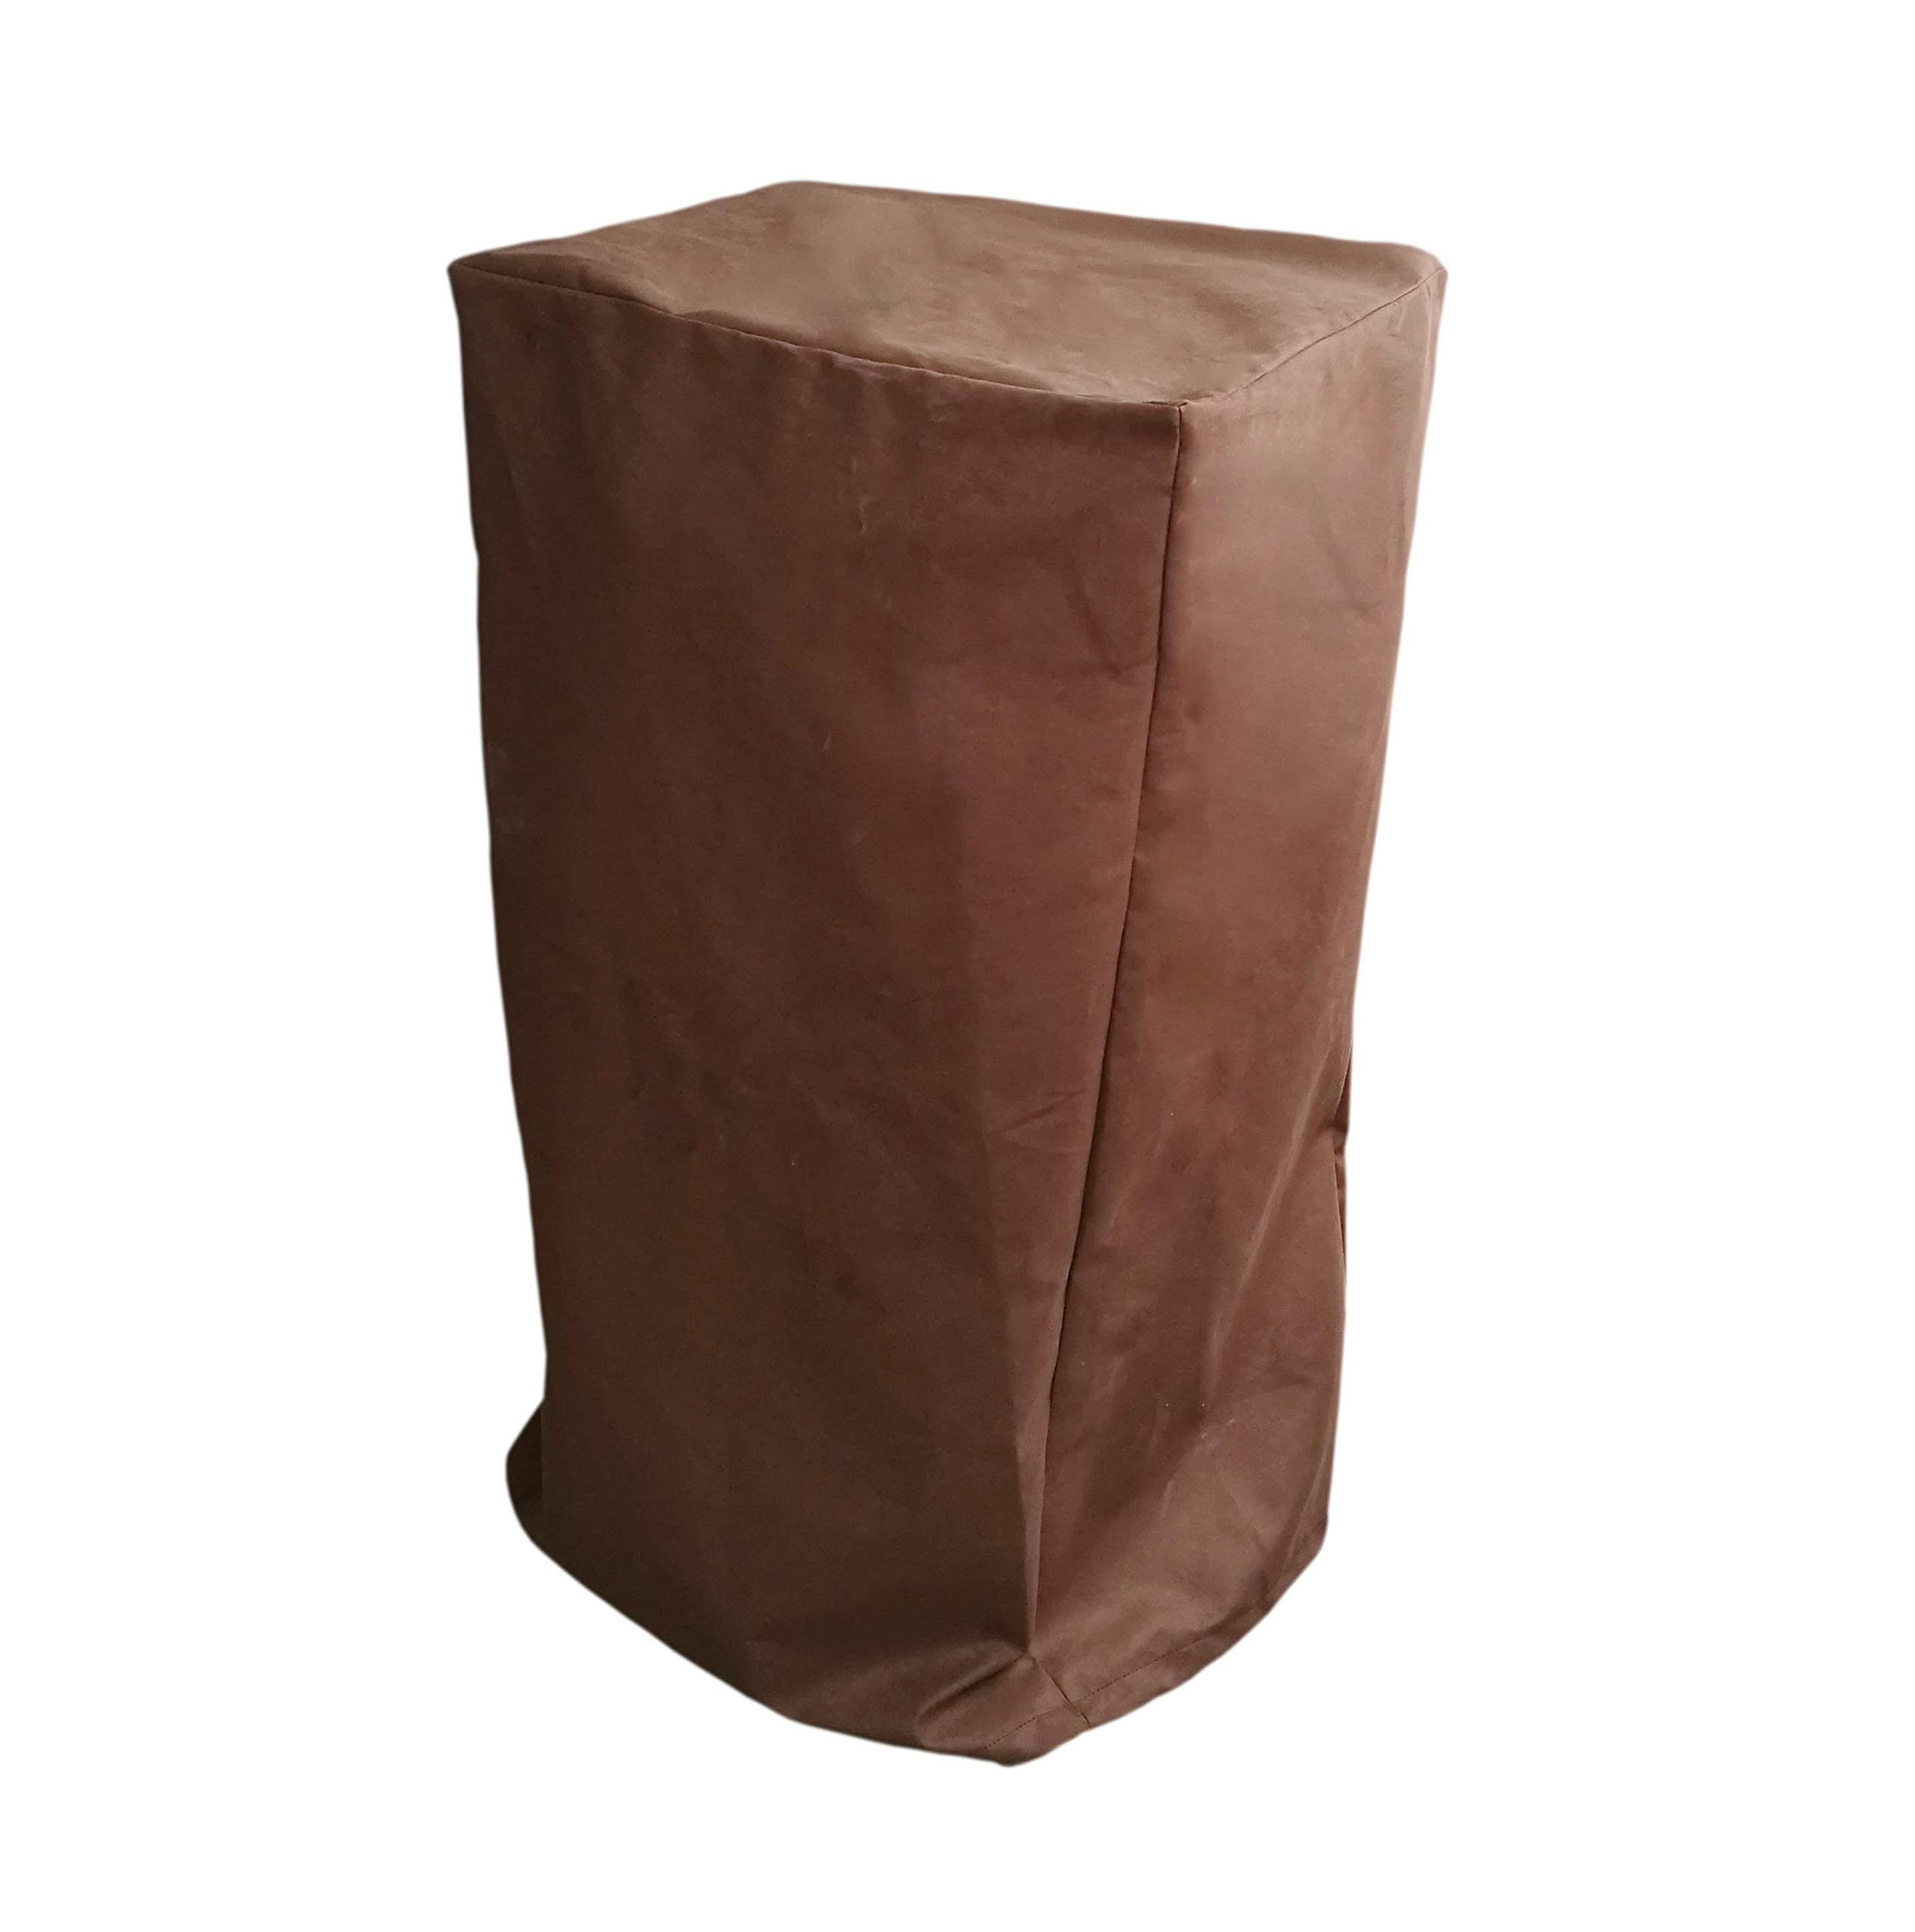 FixtureDisplays Podium Protective Cover Pulpit Cover Lectern Padded Cover 24.2''W x 49''H x 17.7''D 1803-8-TAN-NF No by FixtureDisplays